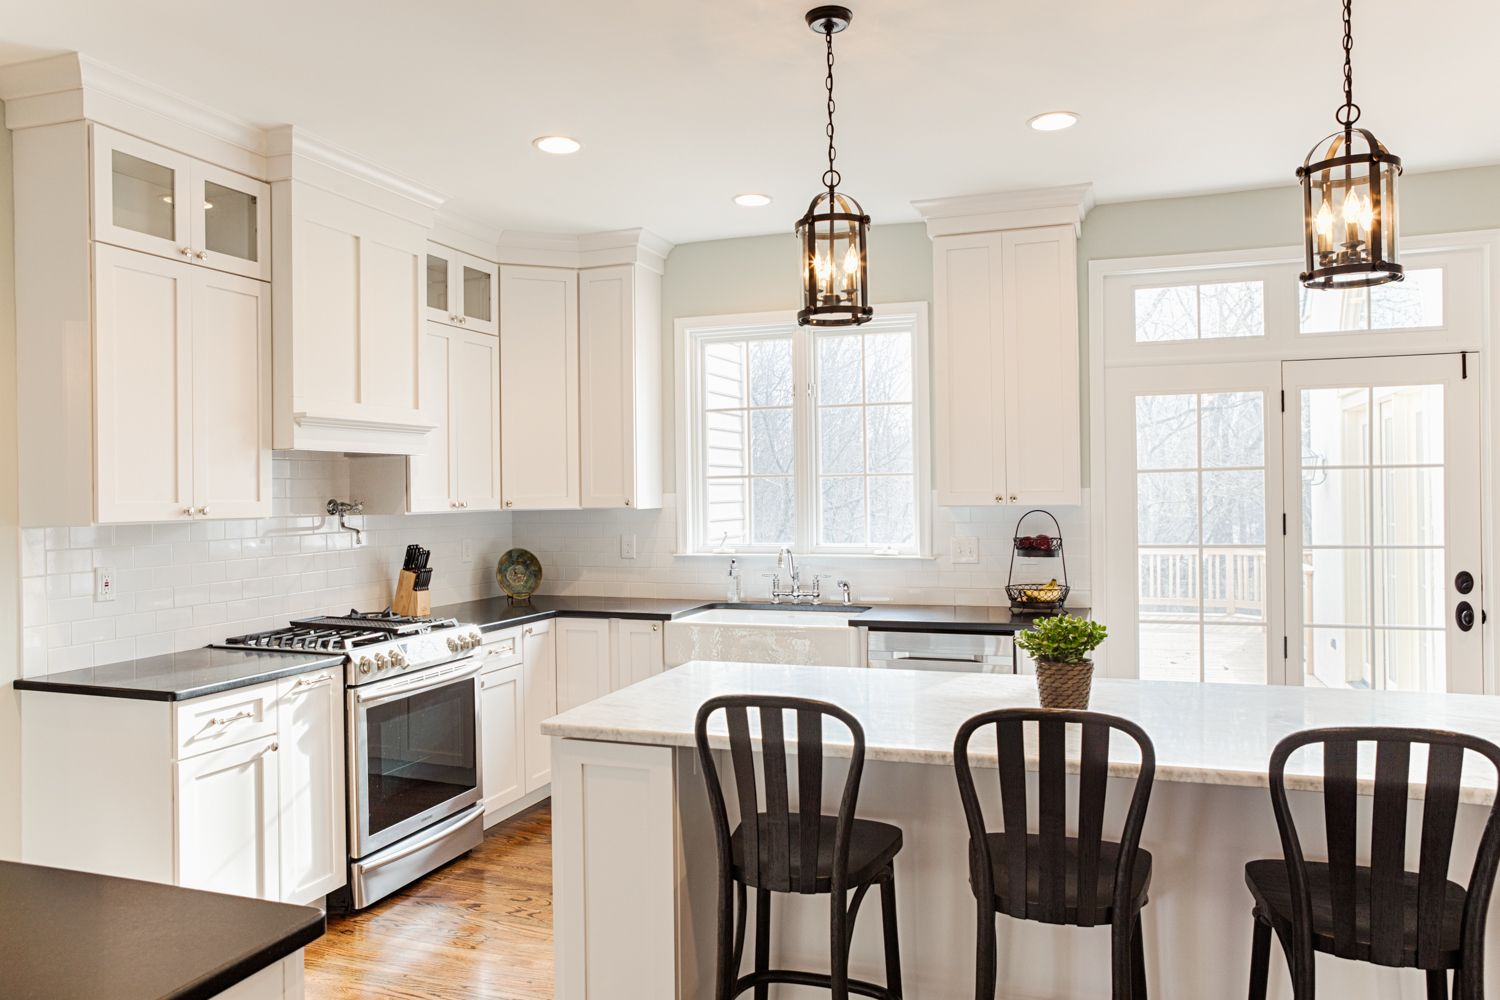 Light And Airy Kitchen In White With Dark Accents Kitchen Kitchen Cabinet Design Home Renovation